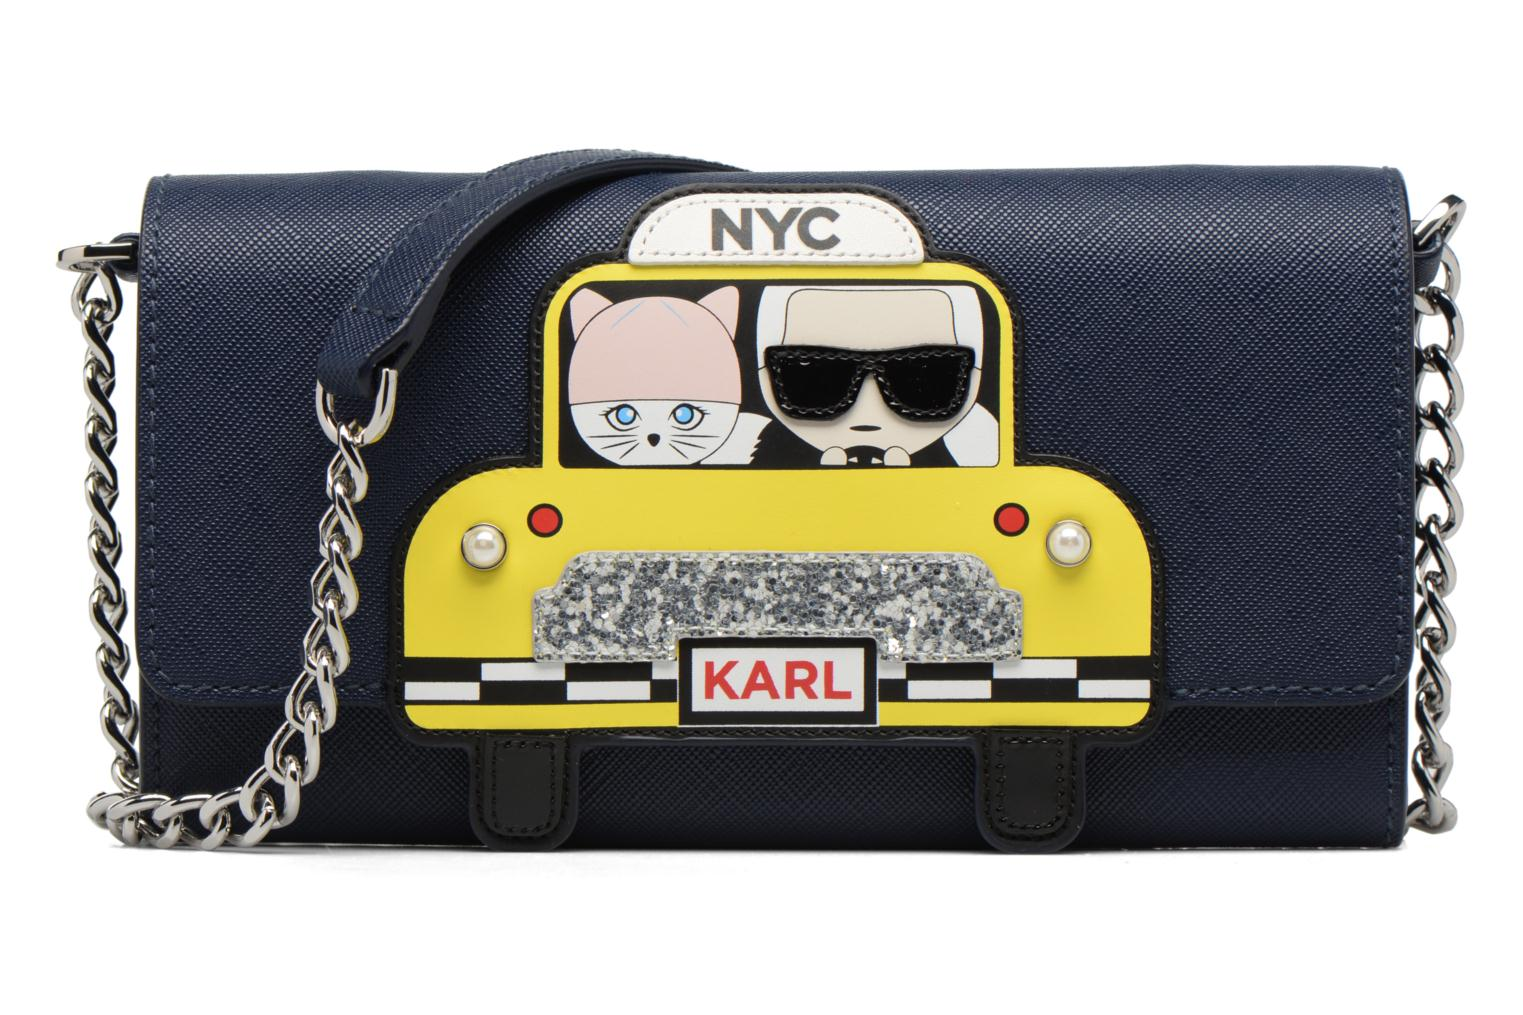 NIGHT KARL Chain NYC Wallet BLUE A330 LAGERFELD qXAX1nvw4